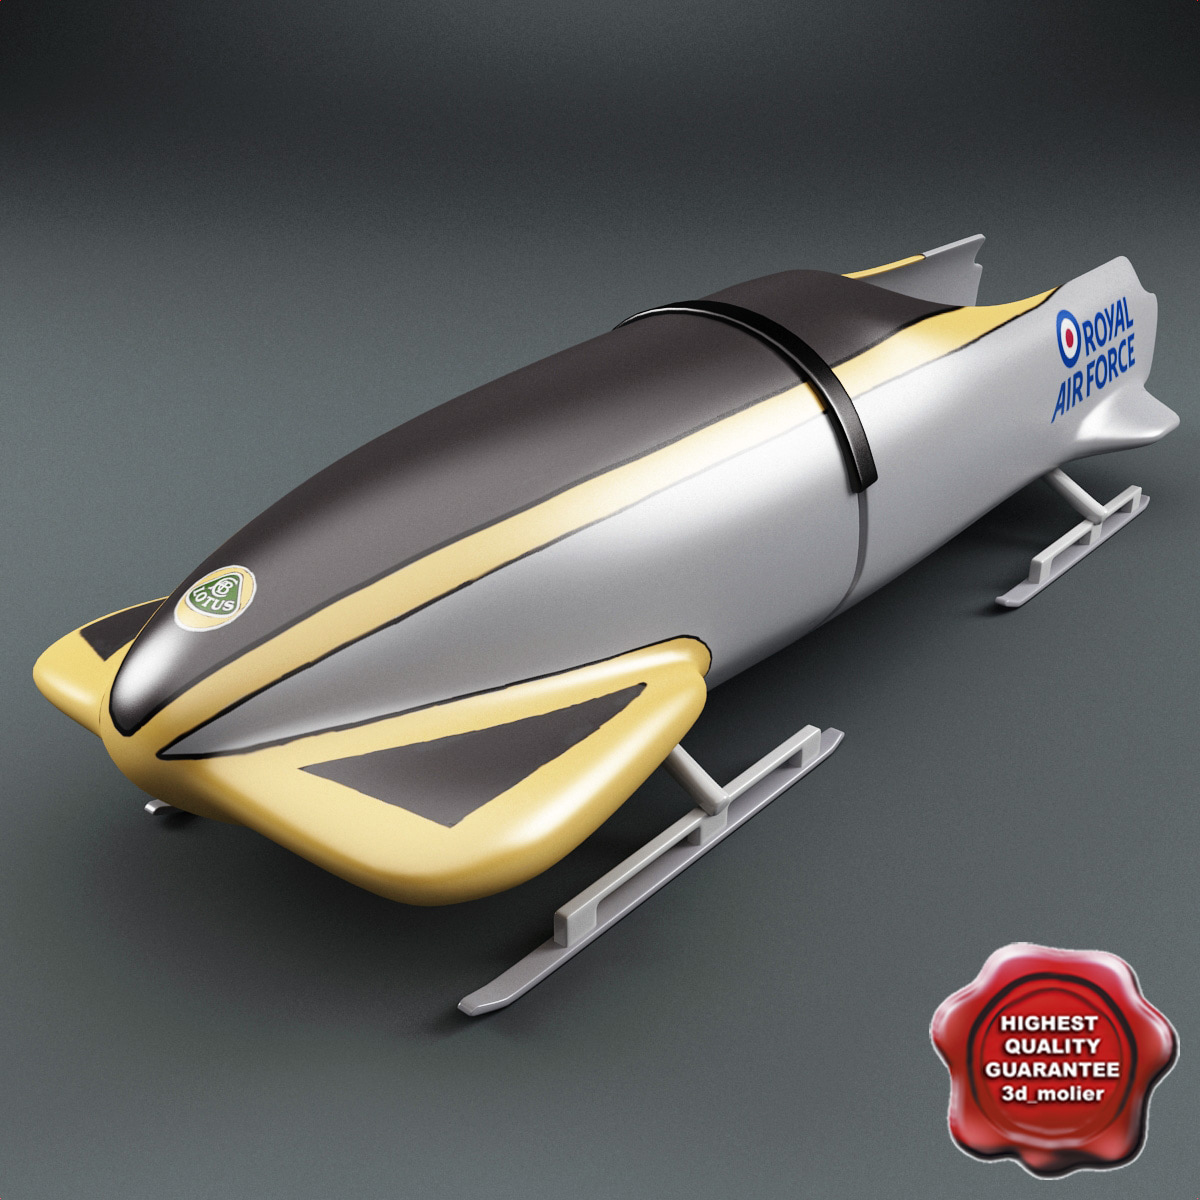 Bobsleigh_Sled_Lotus_00.jpg